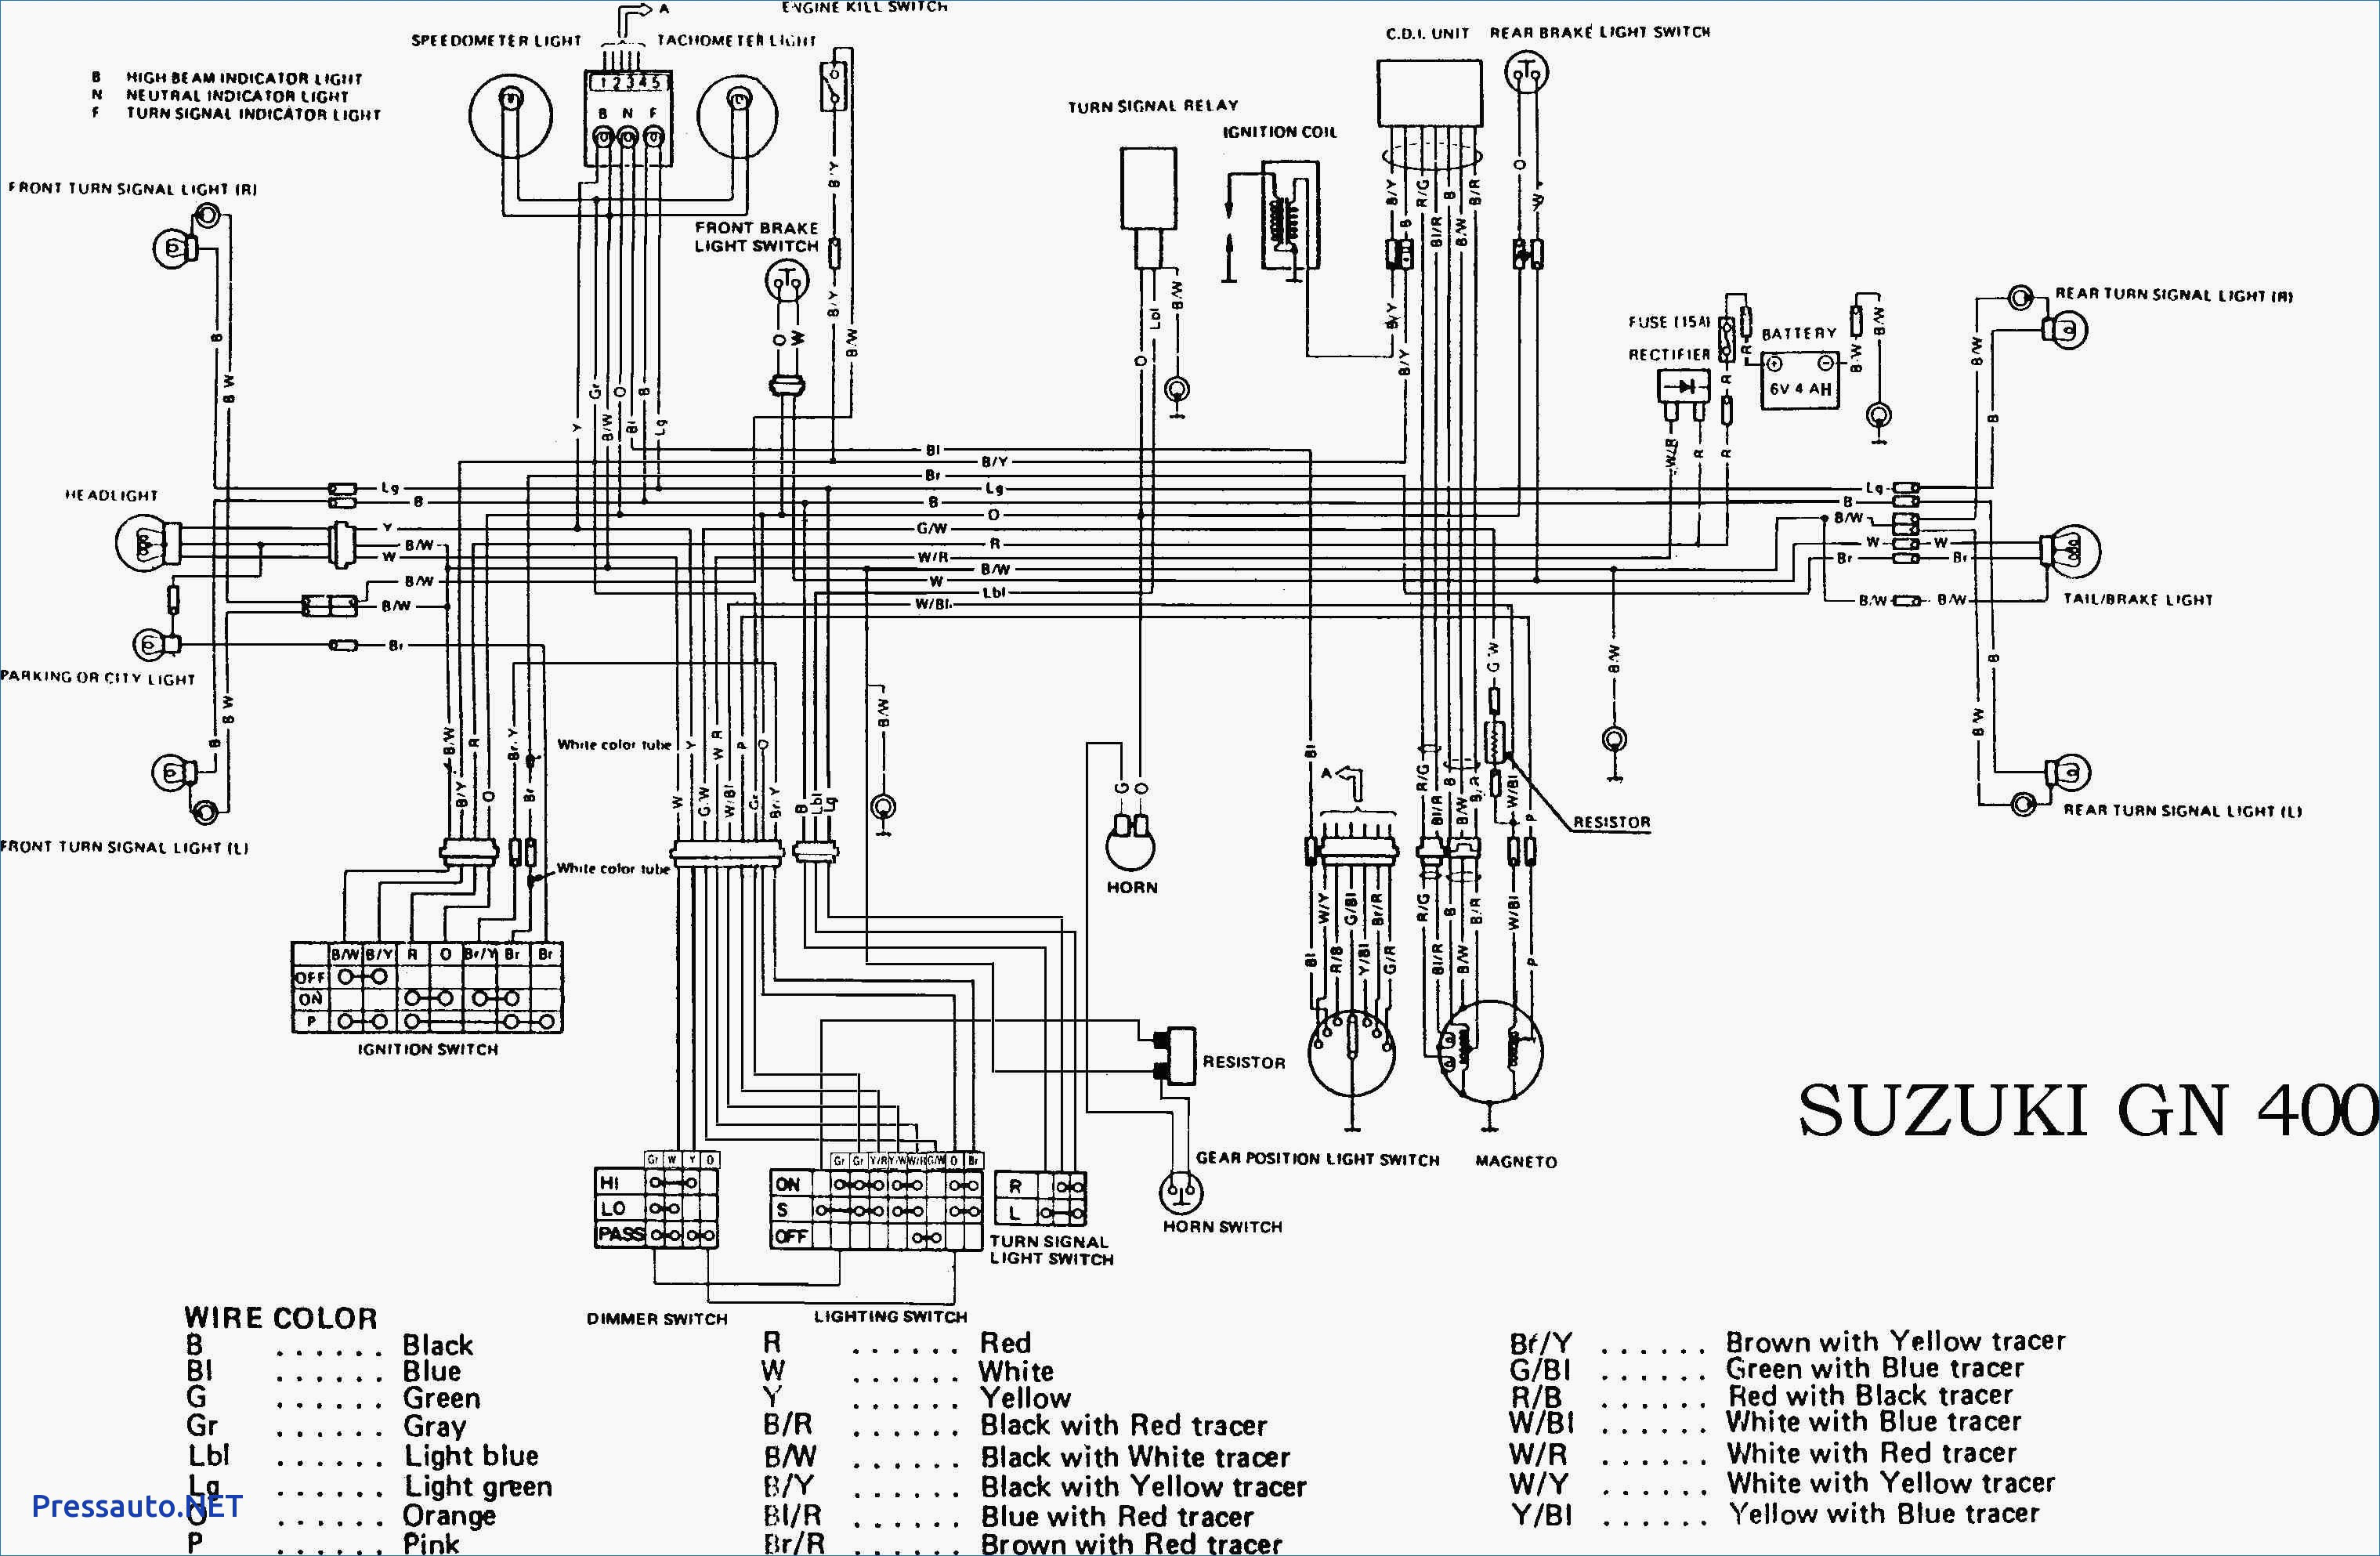 Diagram Bodine Ballast Wiring Diagram Lp 400 Full Version Hd Quality Lp 400 Vhooiozx Fanfaradilegnano It